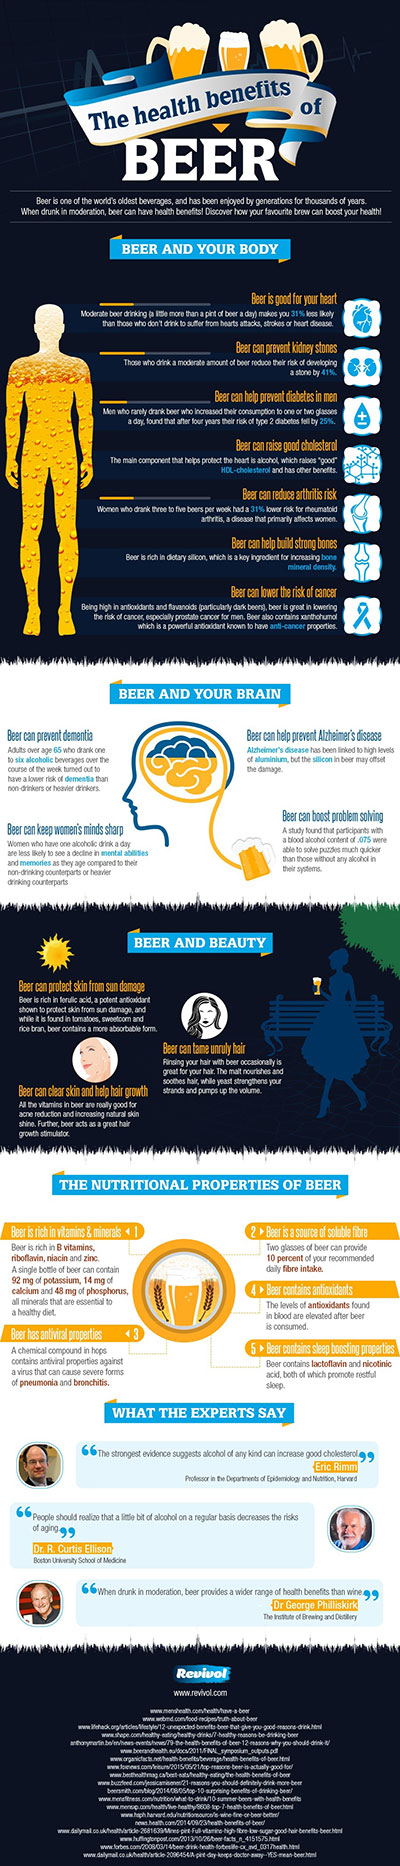 Health-Benefits-of-Beer-Infographic